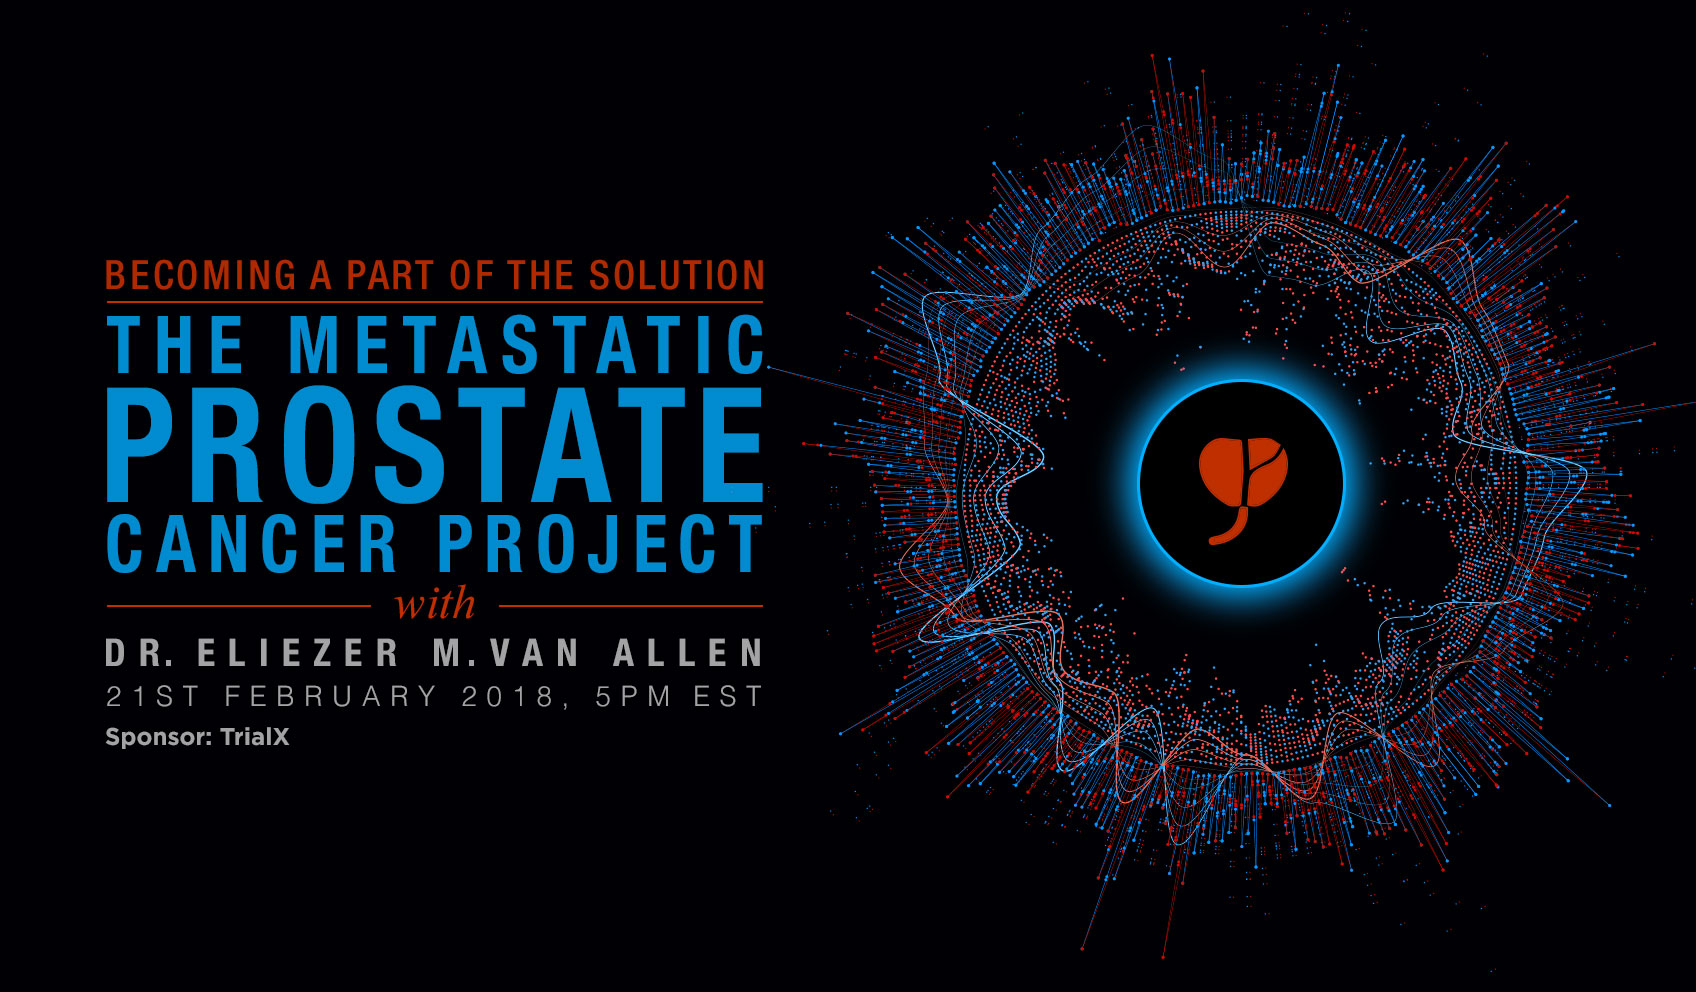 Becoming a part of the solution: The Metastatic Prostate Cancer Project